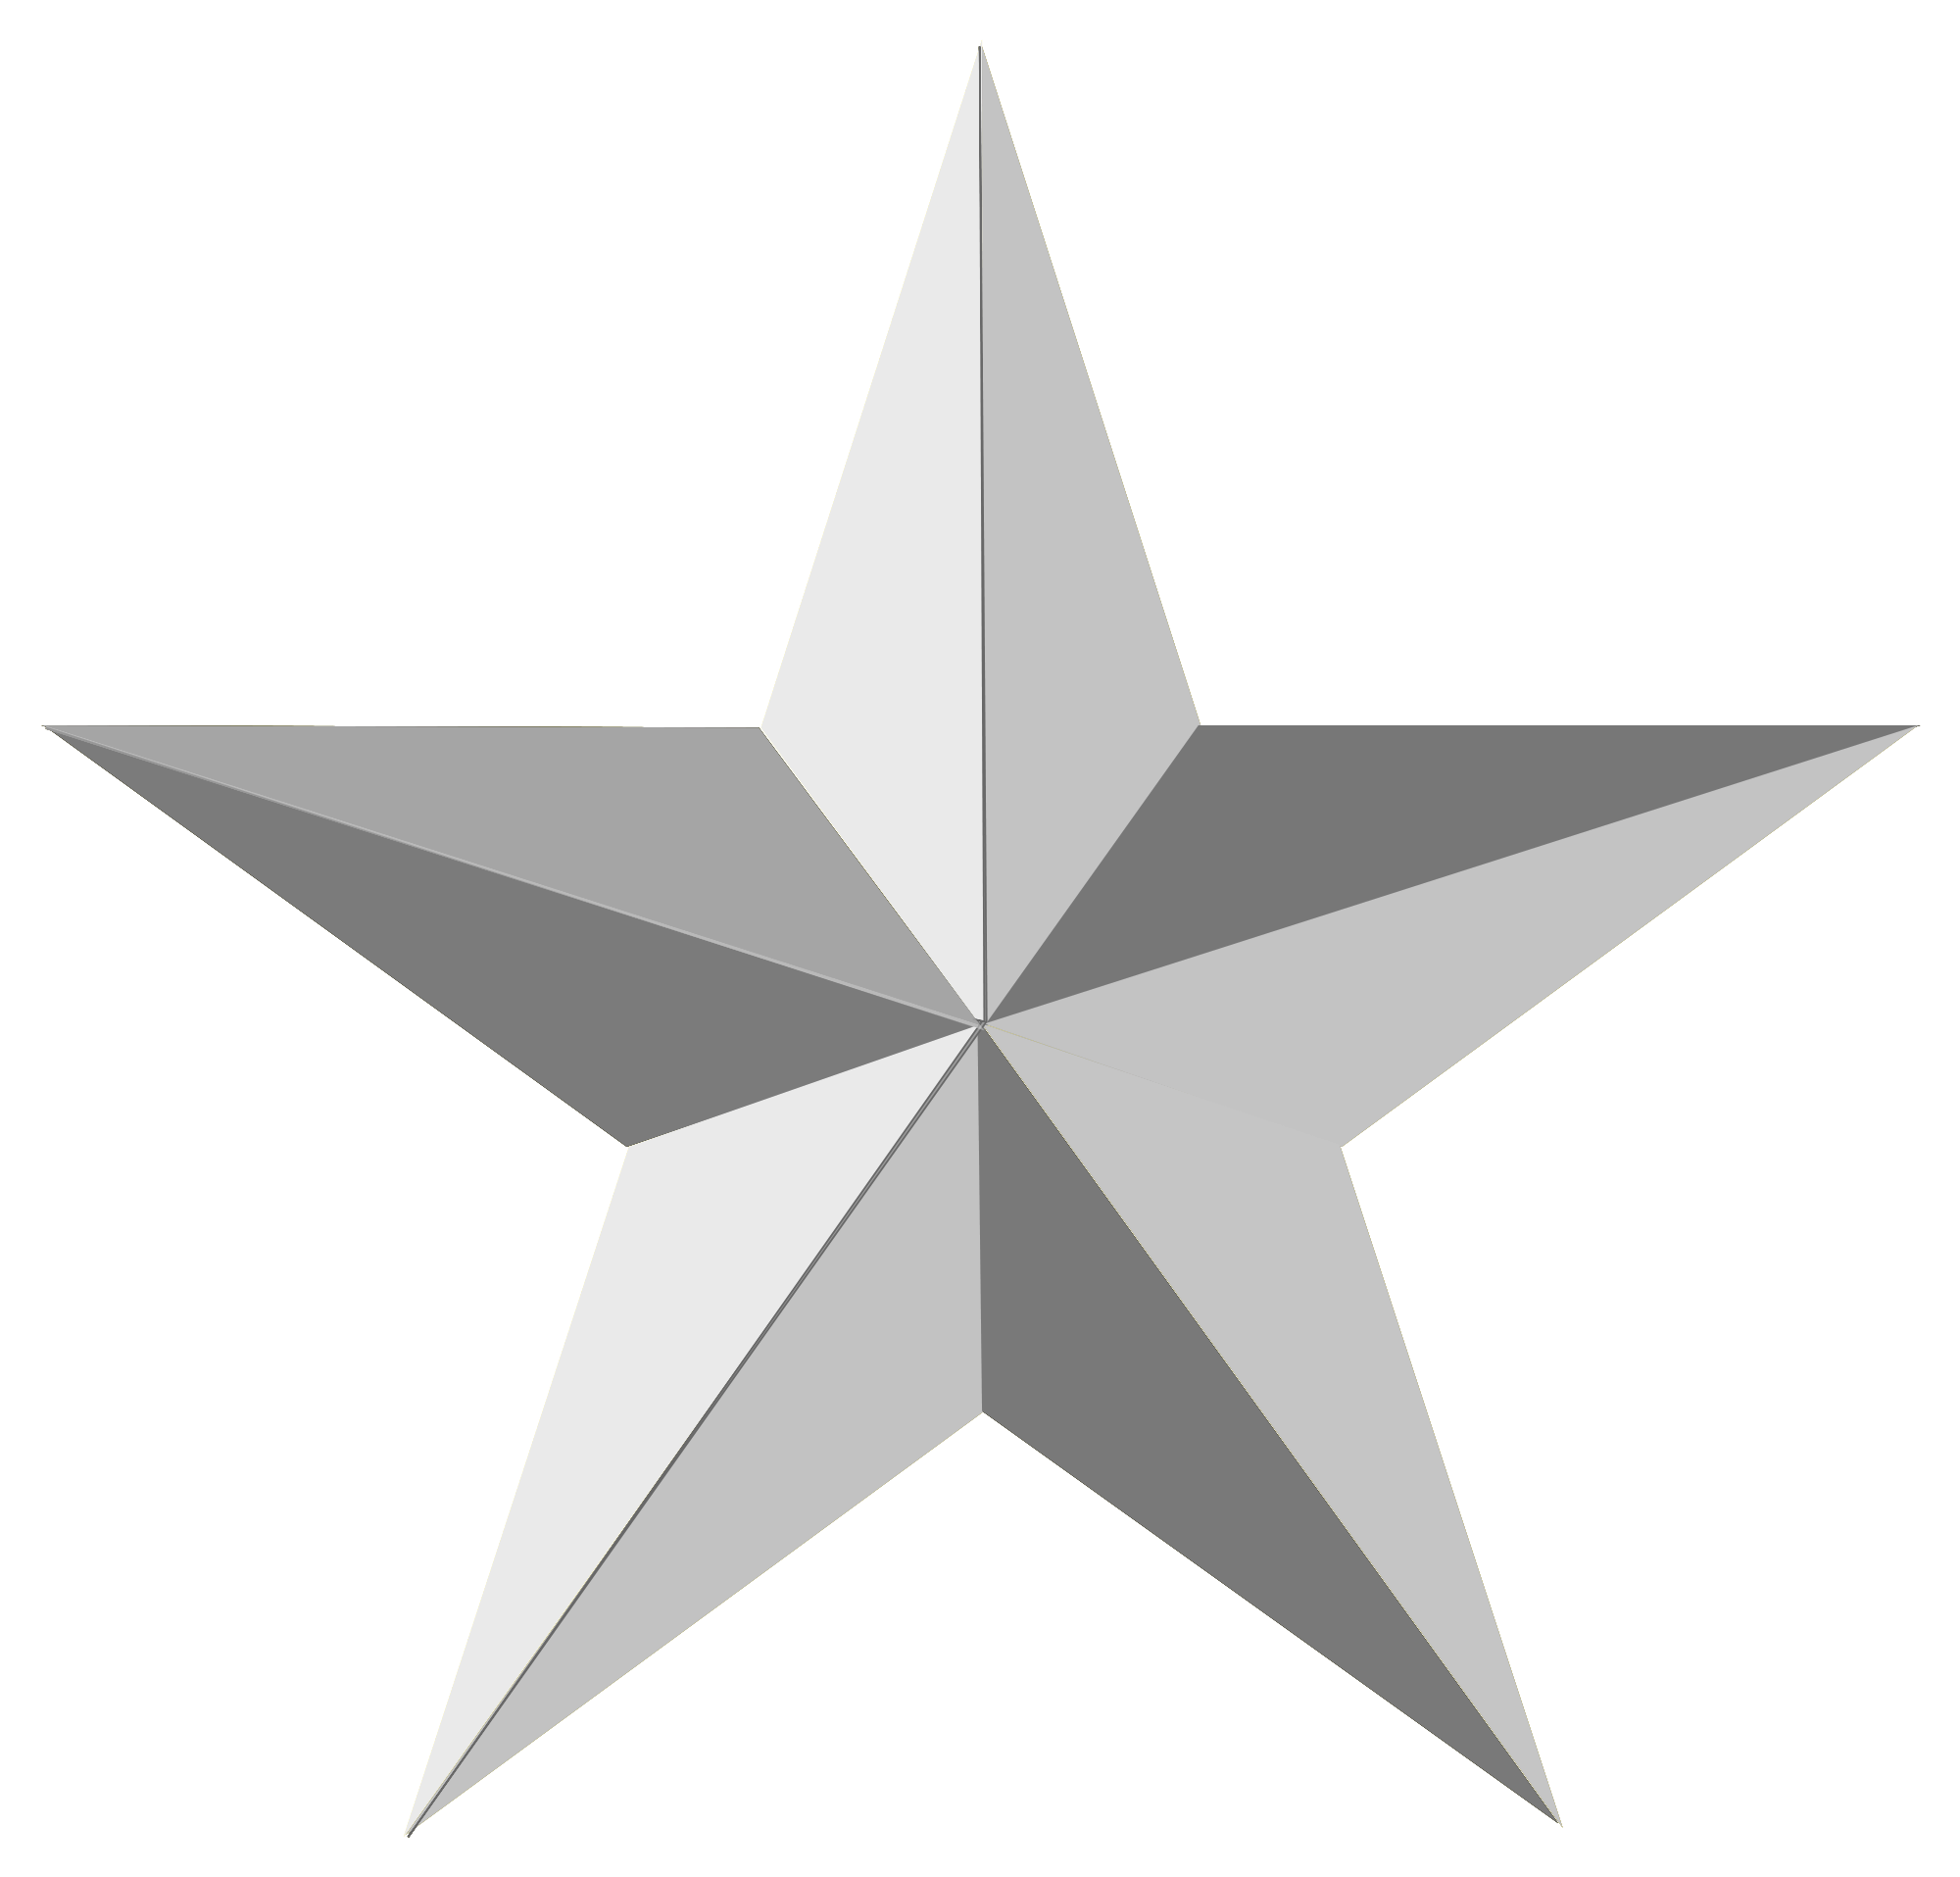 Star png white. Silver image purepng free